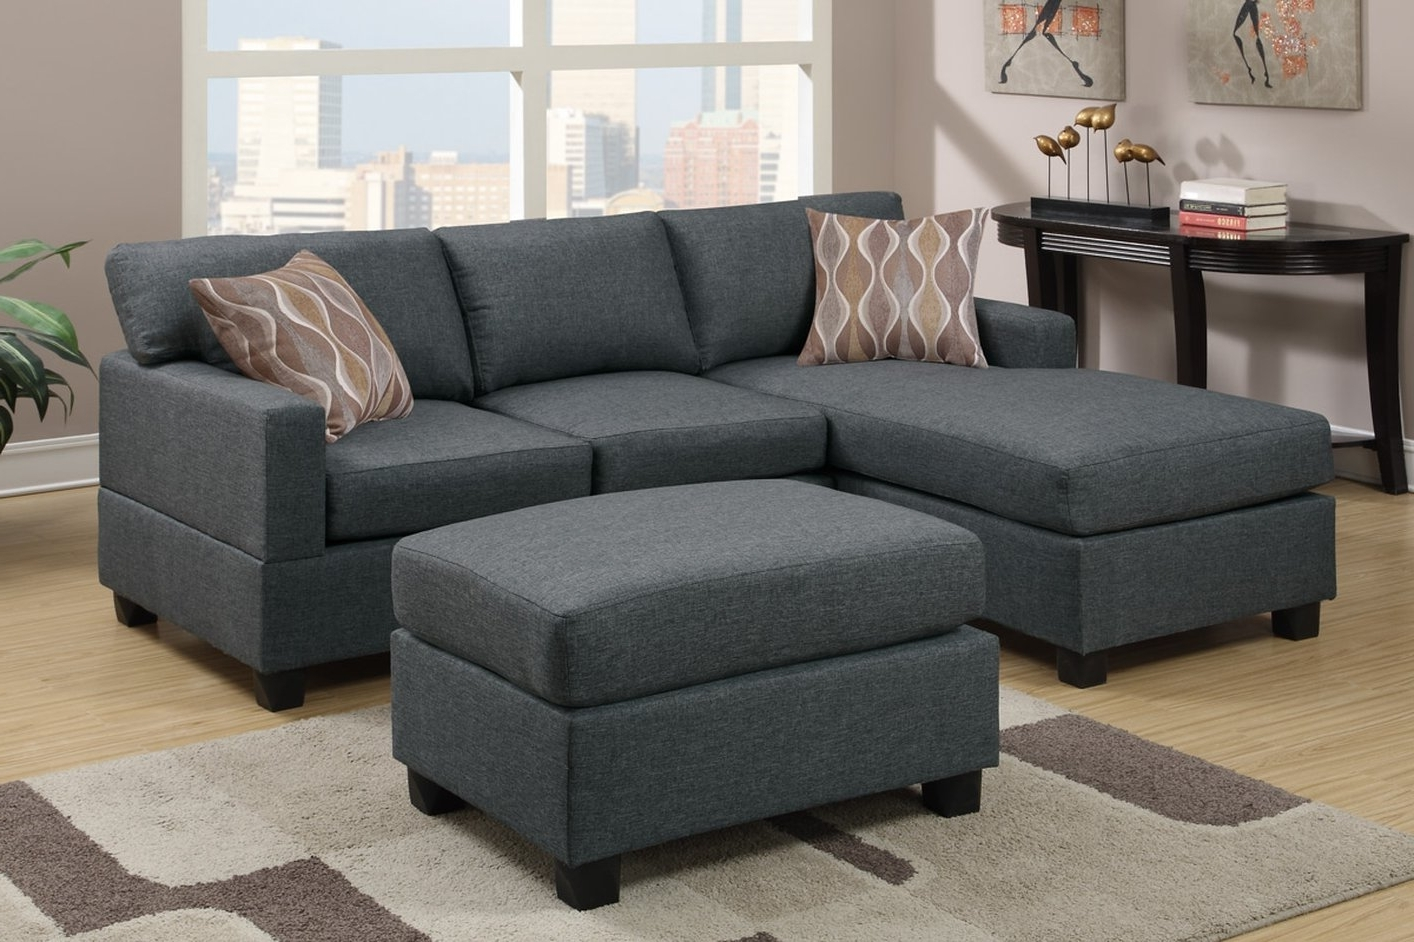 Latest Sofas With Ottoman With Regard To Sectional Sofa Design: Best Sectional Sofas With Ottoman Design (View 10 of 20)